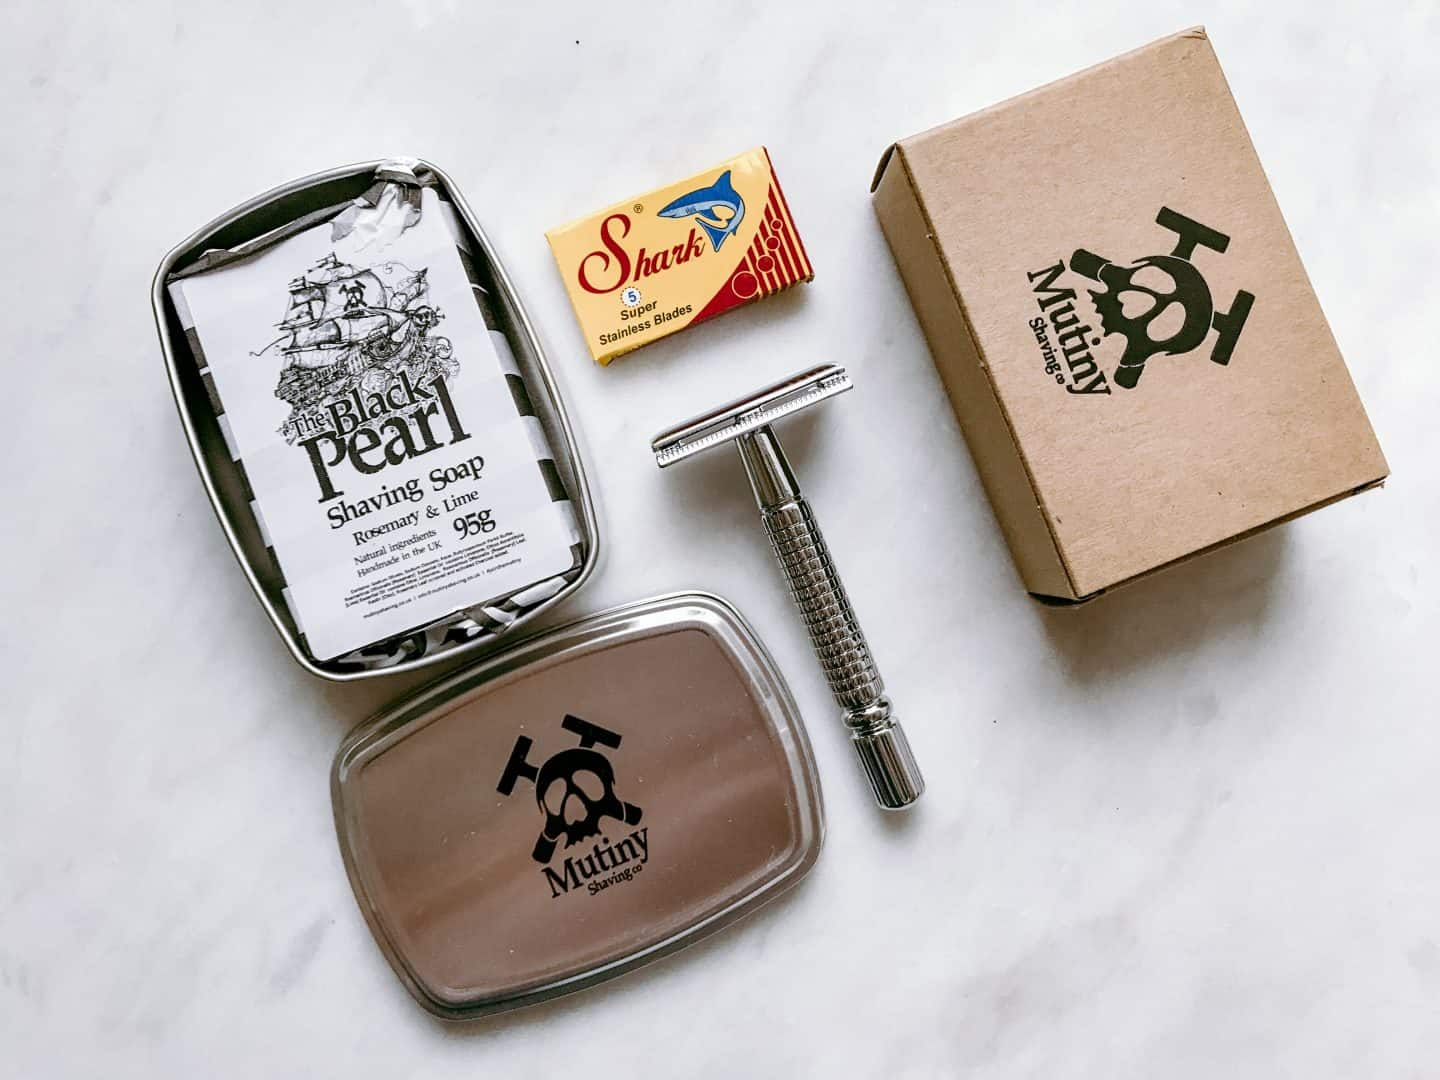 Mutiny Shaving safety razor and shaving soap